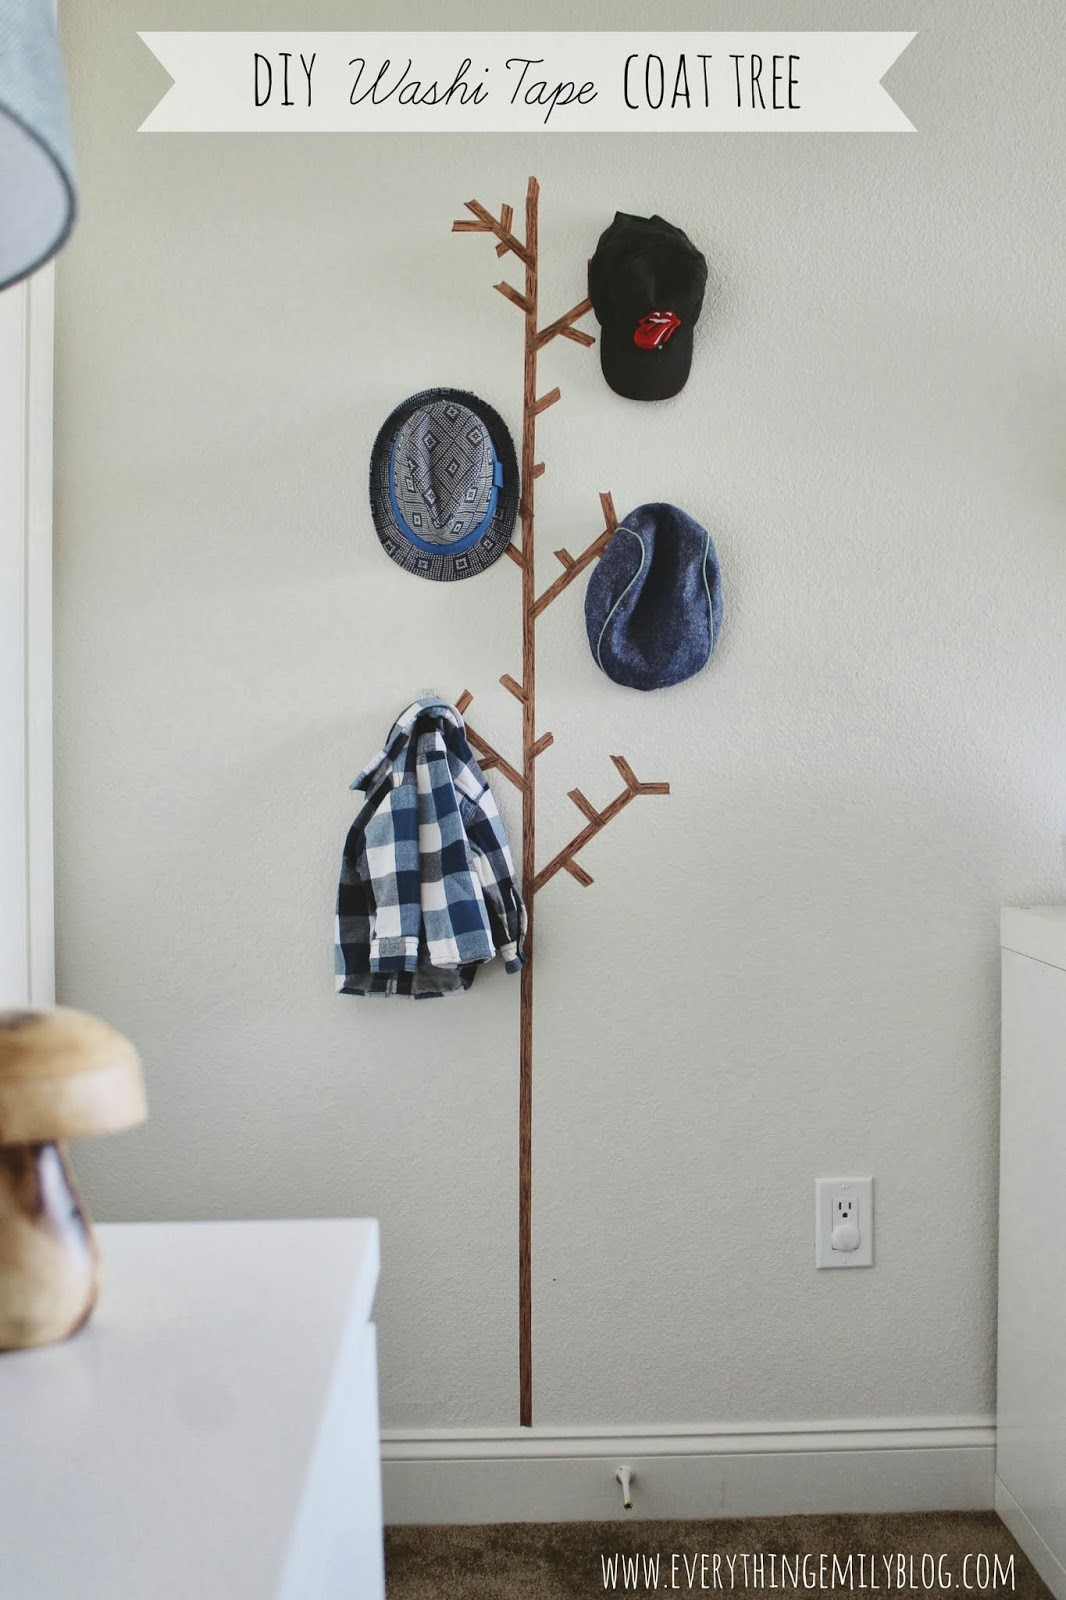 Ideas Para Decorar Con Washi Tape Diy Washi Tape Coat Tree Everything Emily